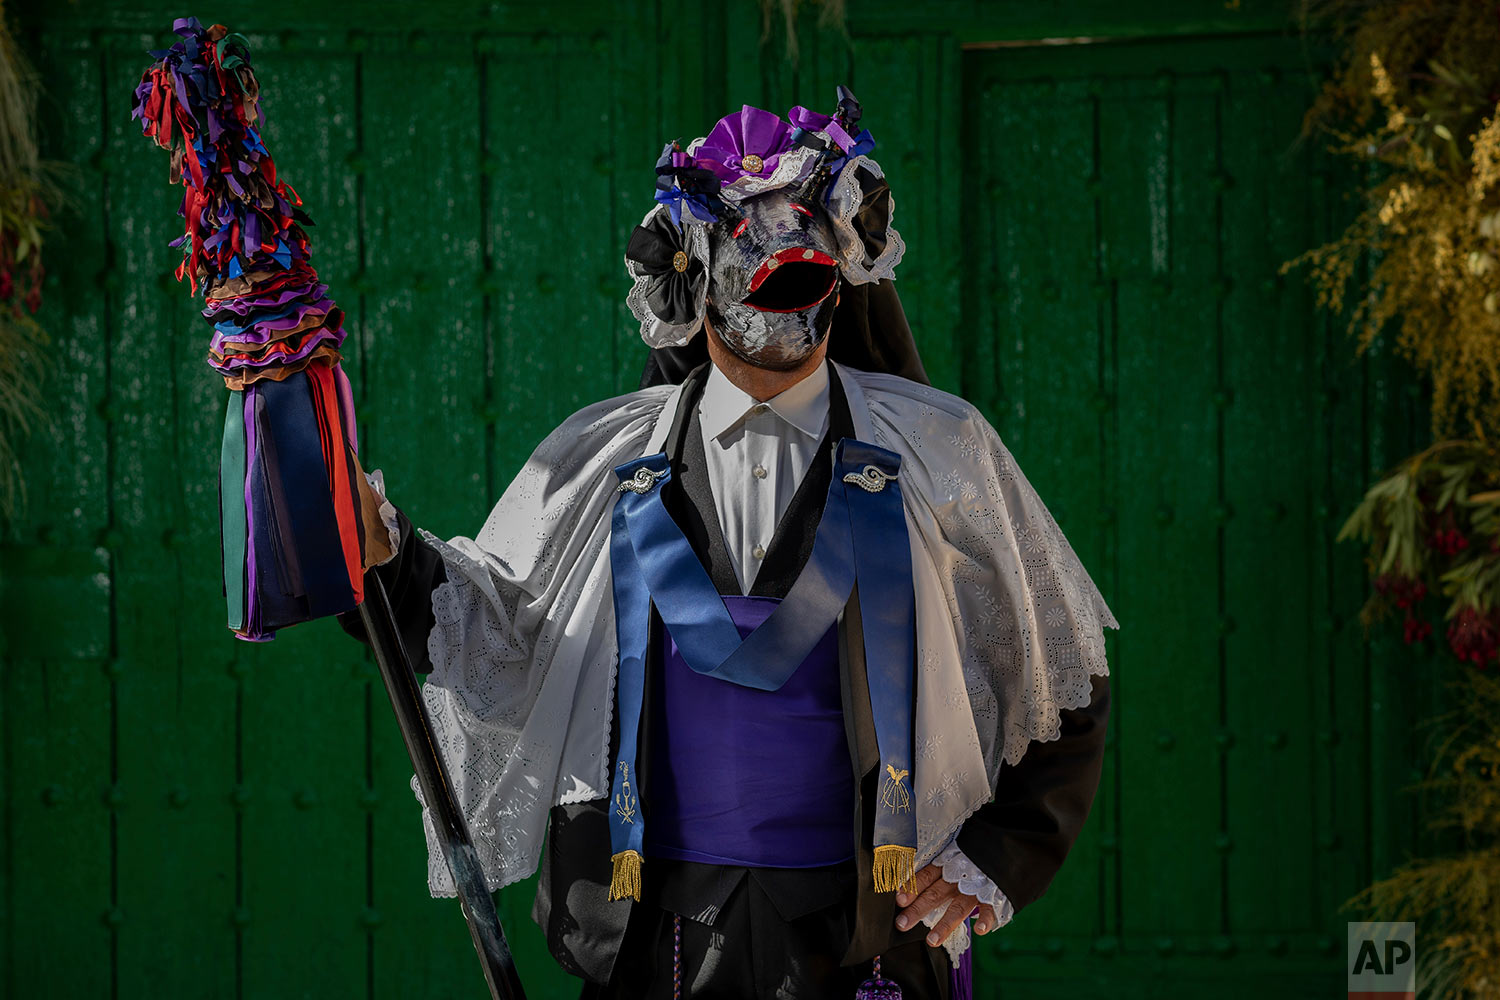 "In this Thursday, June 20, 2019 photo, portrait of a member of the ""Hermandad del santísimo sacramento pecados y danzantes"" brotherhood in Camunas, central Spain. (AP Photo/Bernat Armangue)"